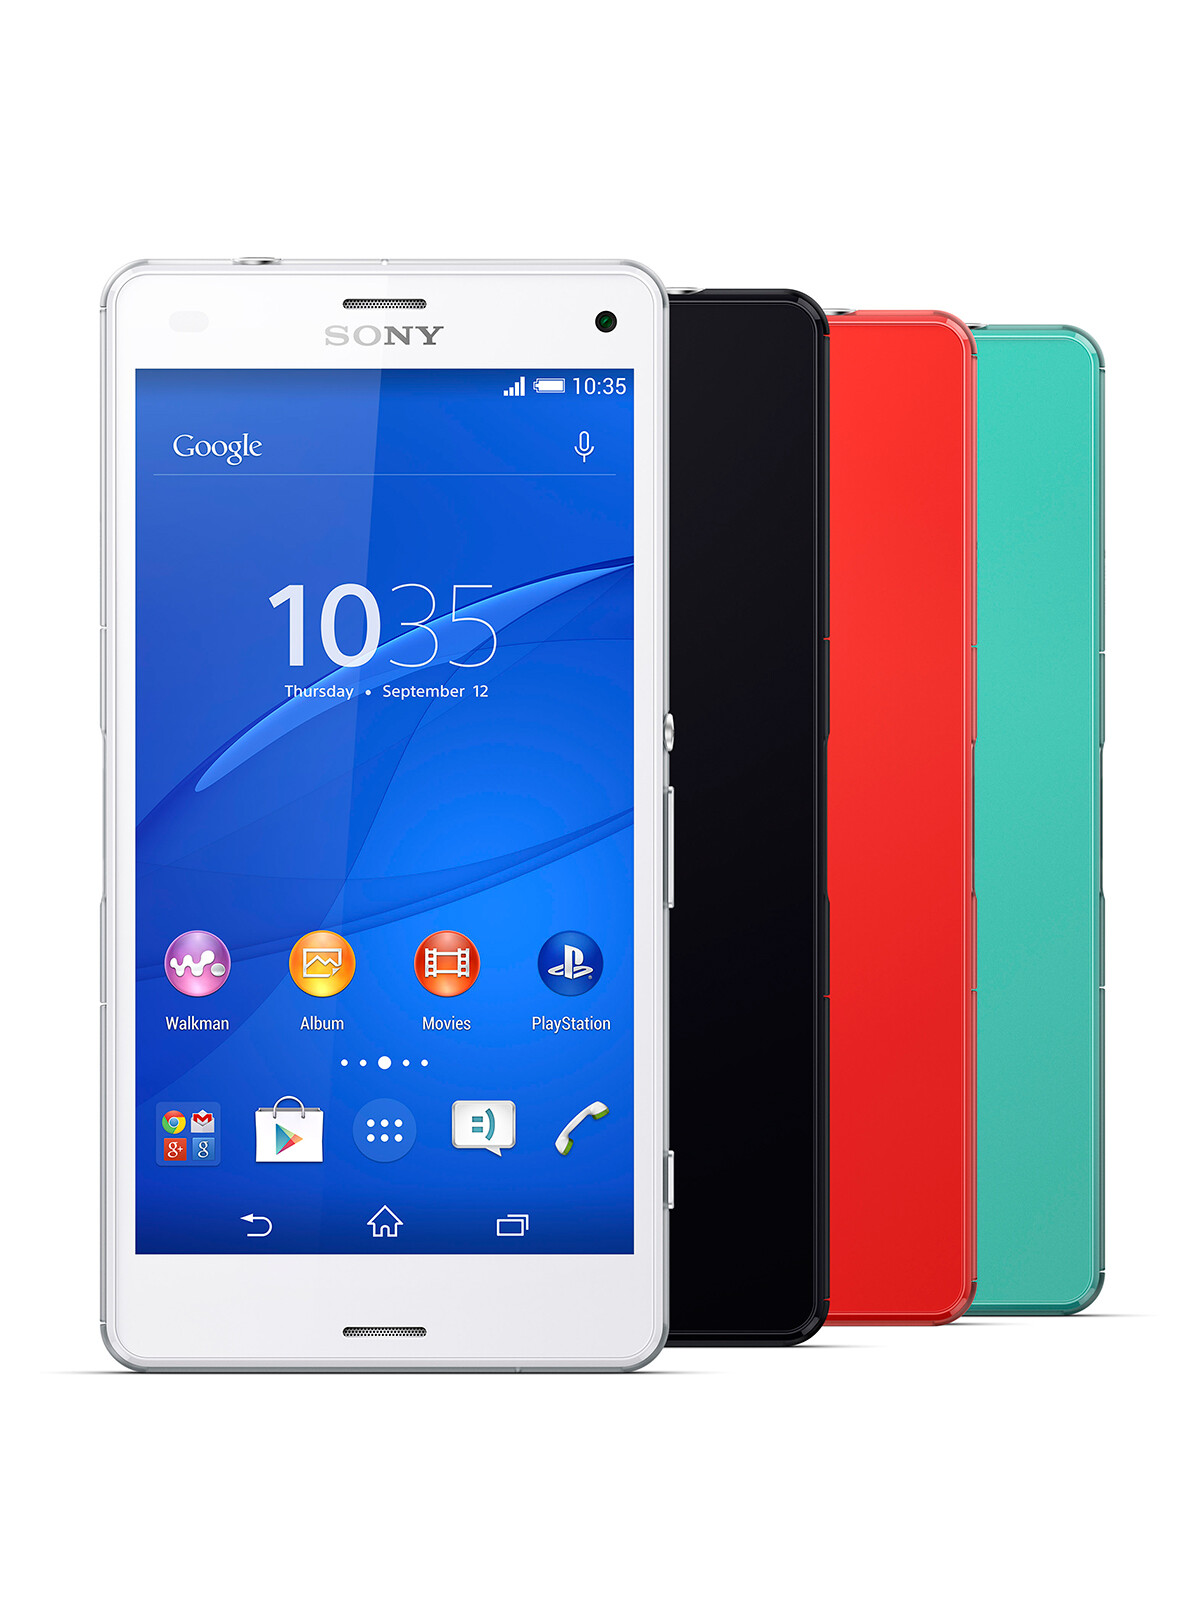 The Xperia Z3 Tablet Compact redefines portability. It's lighter than a book, as slim as a magazine, and slips easily into a handbag. The most advanced Sony technologies were used to create a compact tablet that's also incredibly powerful. So while it's small on bulk, it's big on performance.